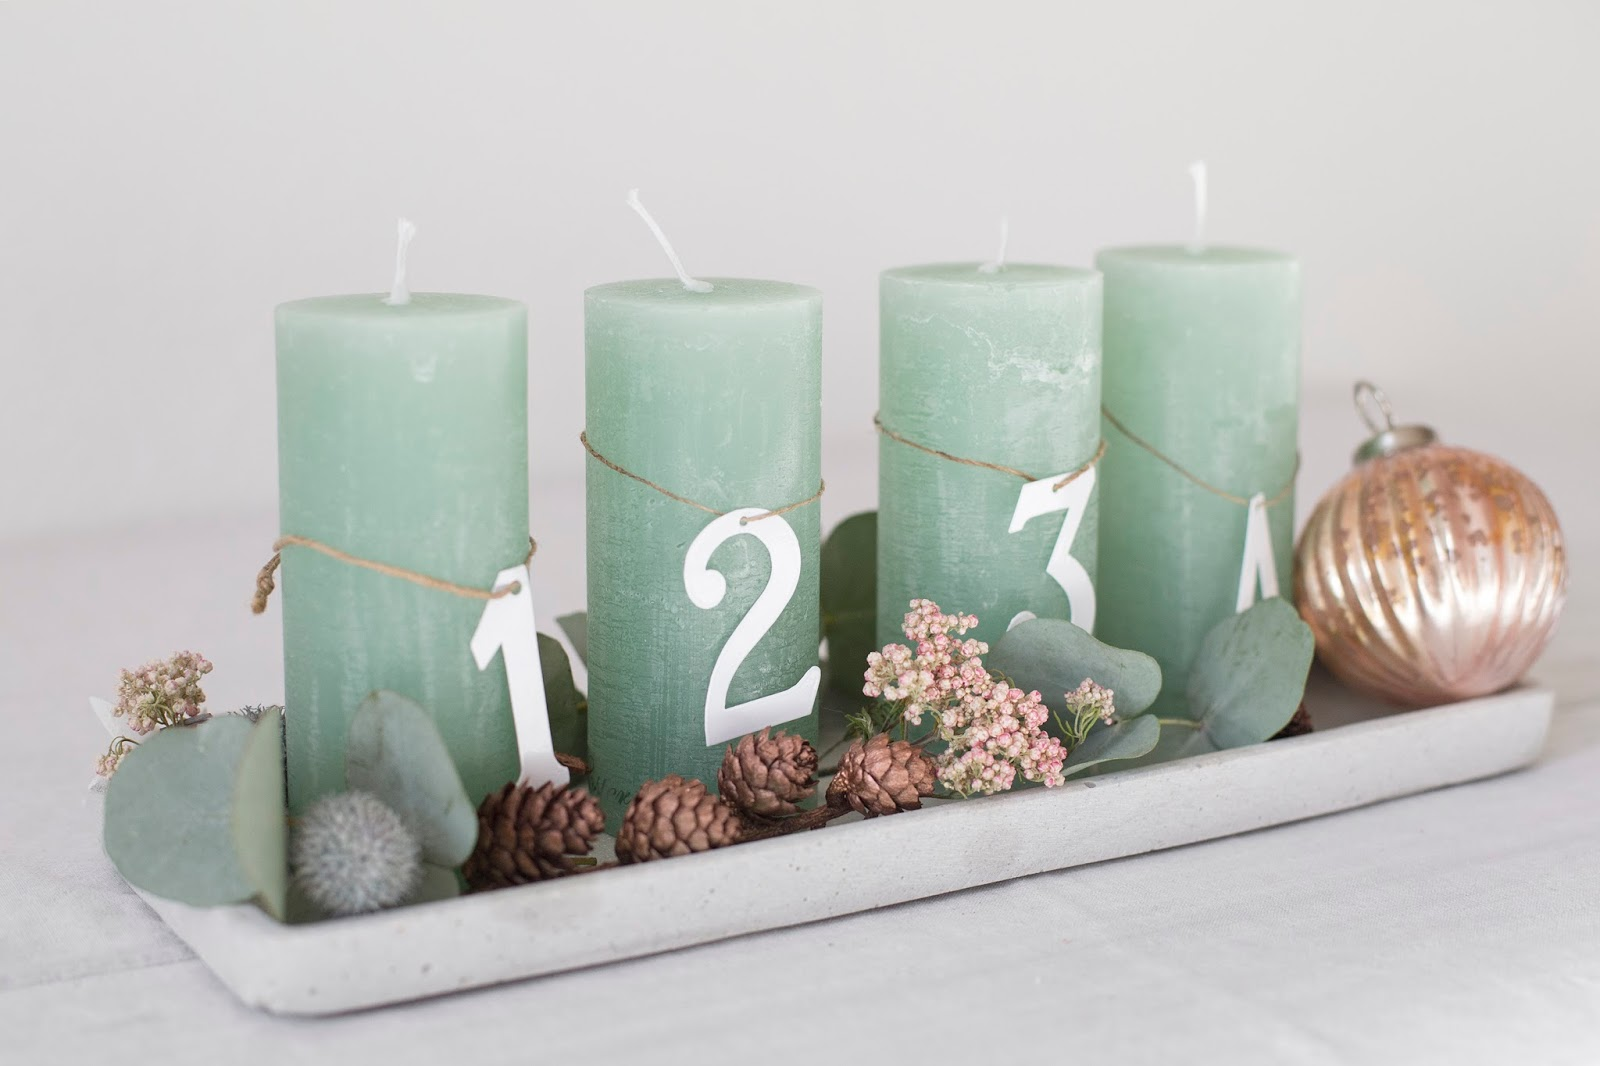 Adventskranz DIY